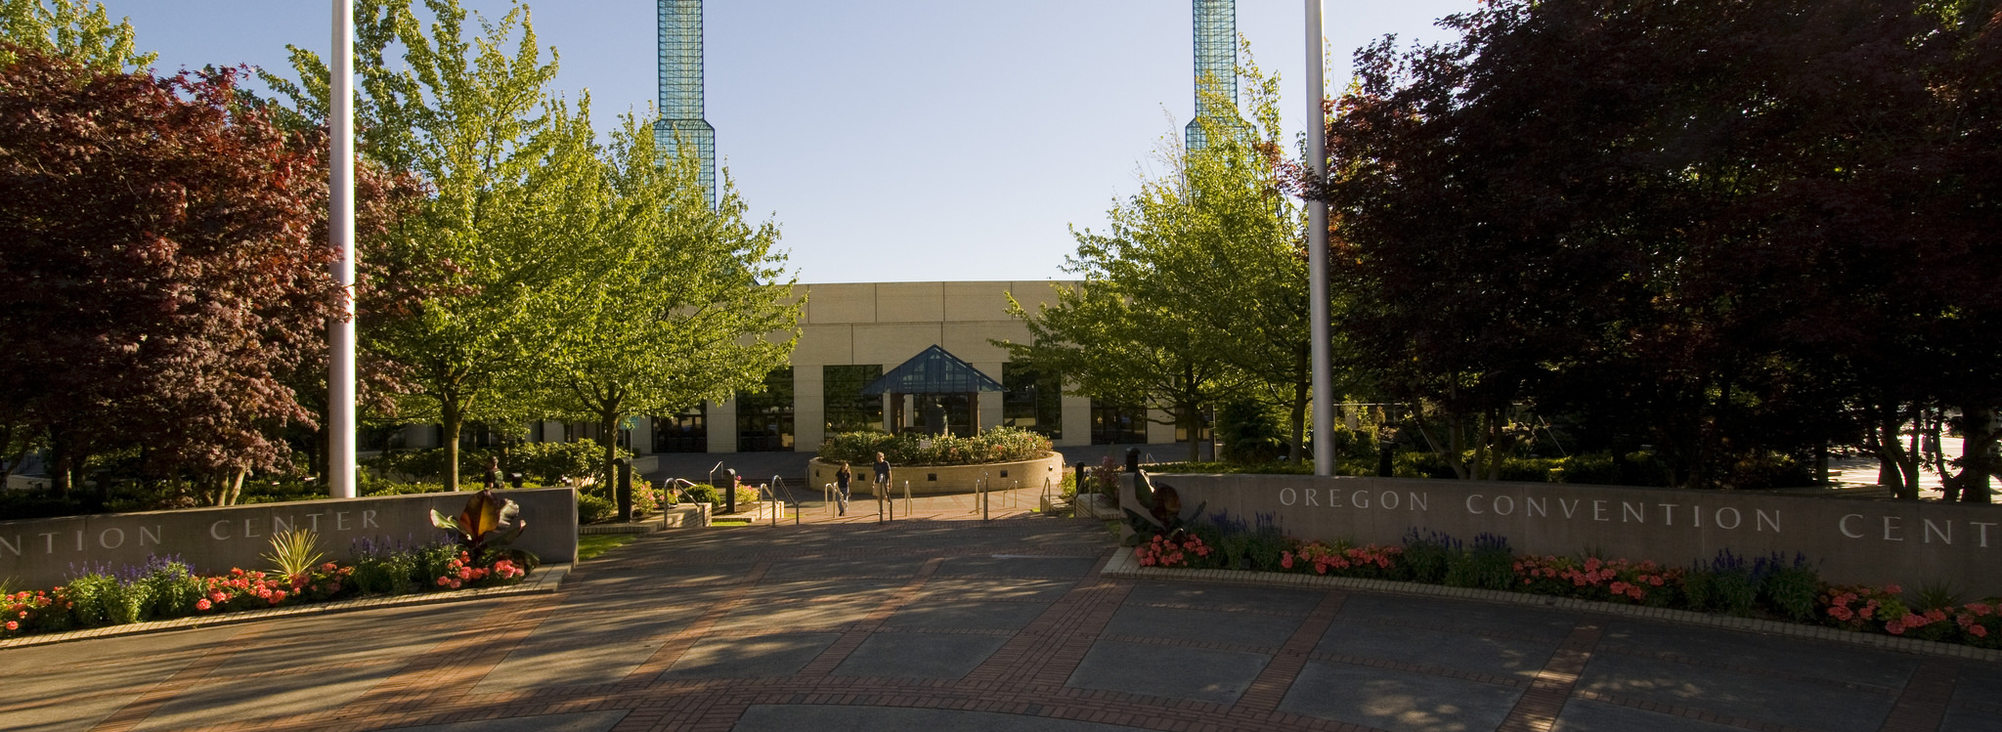 Oregon Convention Center plaza